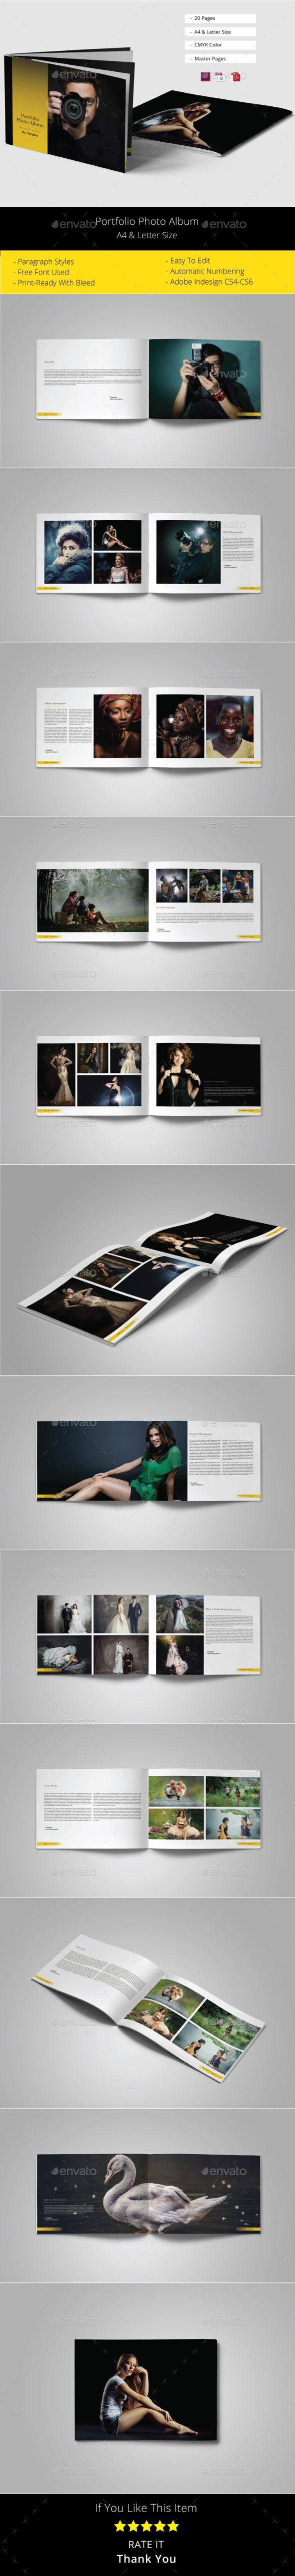 Portfolio Photo Album Template | Inspiración